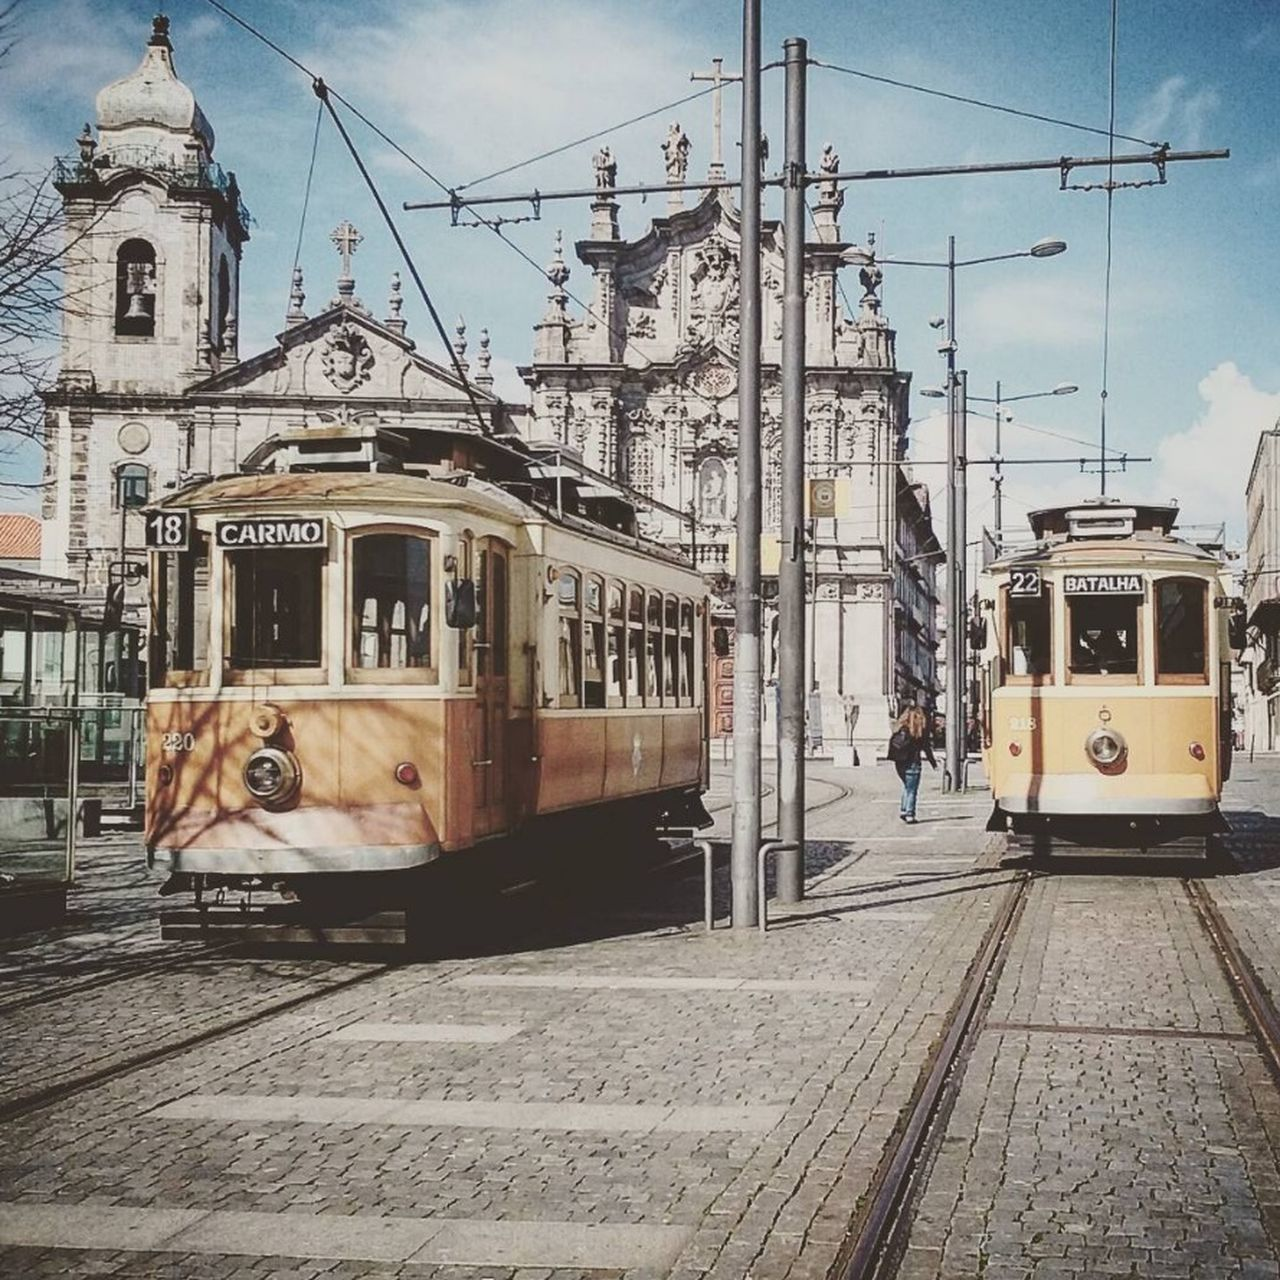 Antique Architecture Building Exterior Built Structure Cable Car City City Life Day EyeEmNewHere Land Vehicle Men Metro Mode Of Transport Old Old Buildings Old Town Old Train Outdoors Public Transportation Streetphotography Train Tram Tramway Transportation Travel